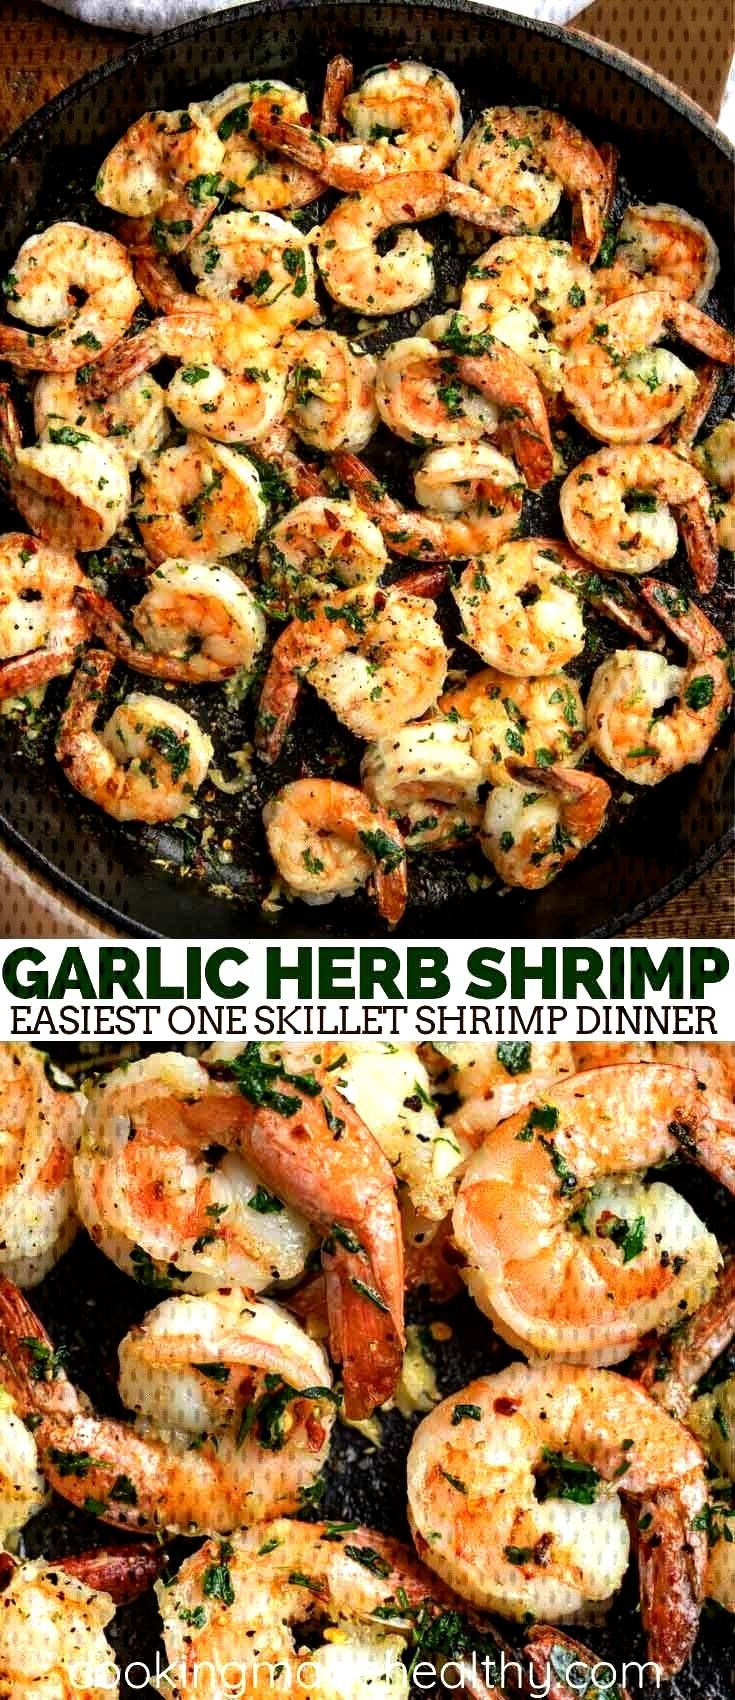 Garlic Herb Shrimp made with olive oil, fresh herbs, lemon and garlic. This is t...#fresh